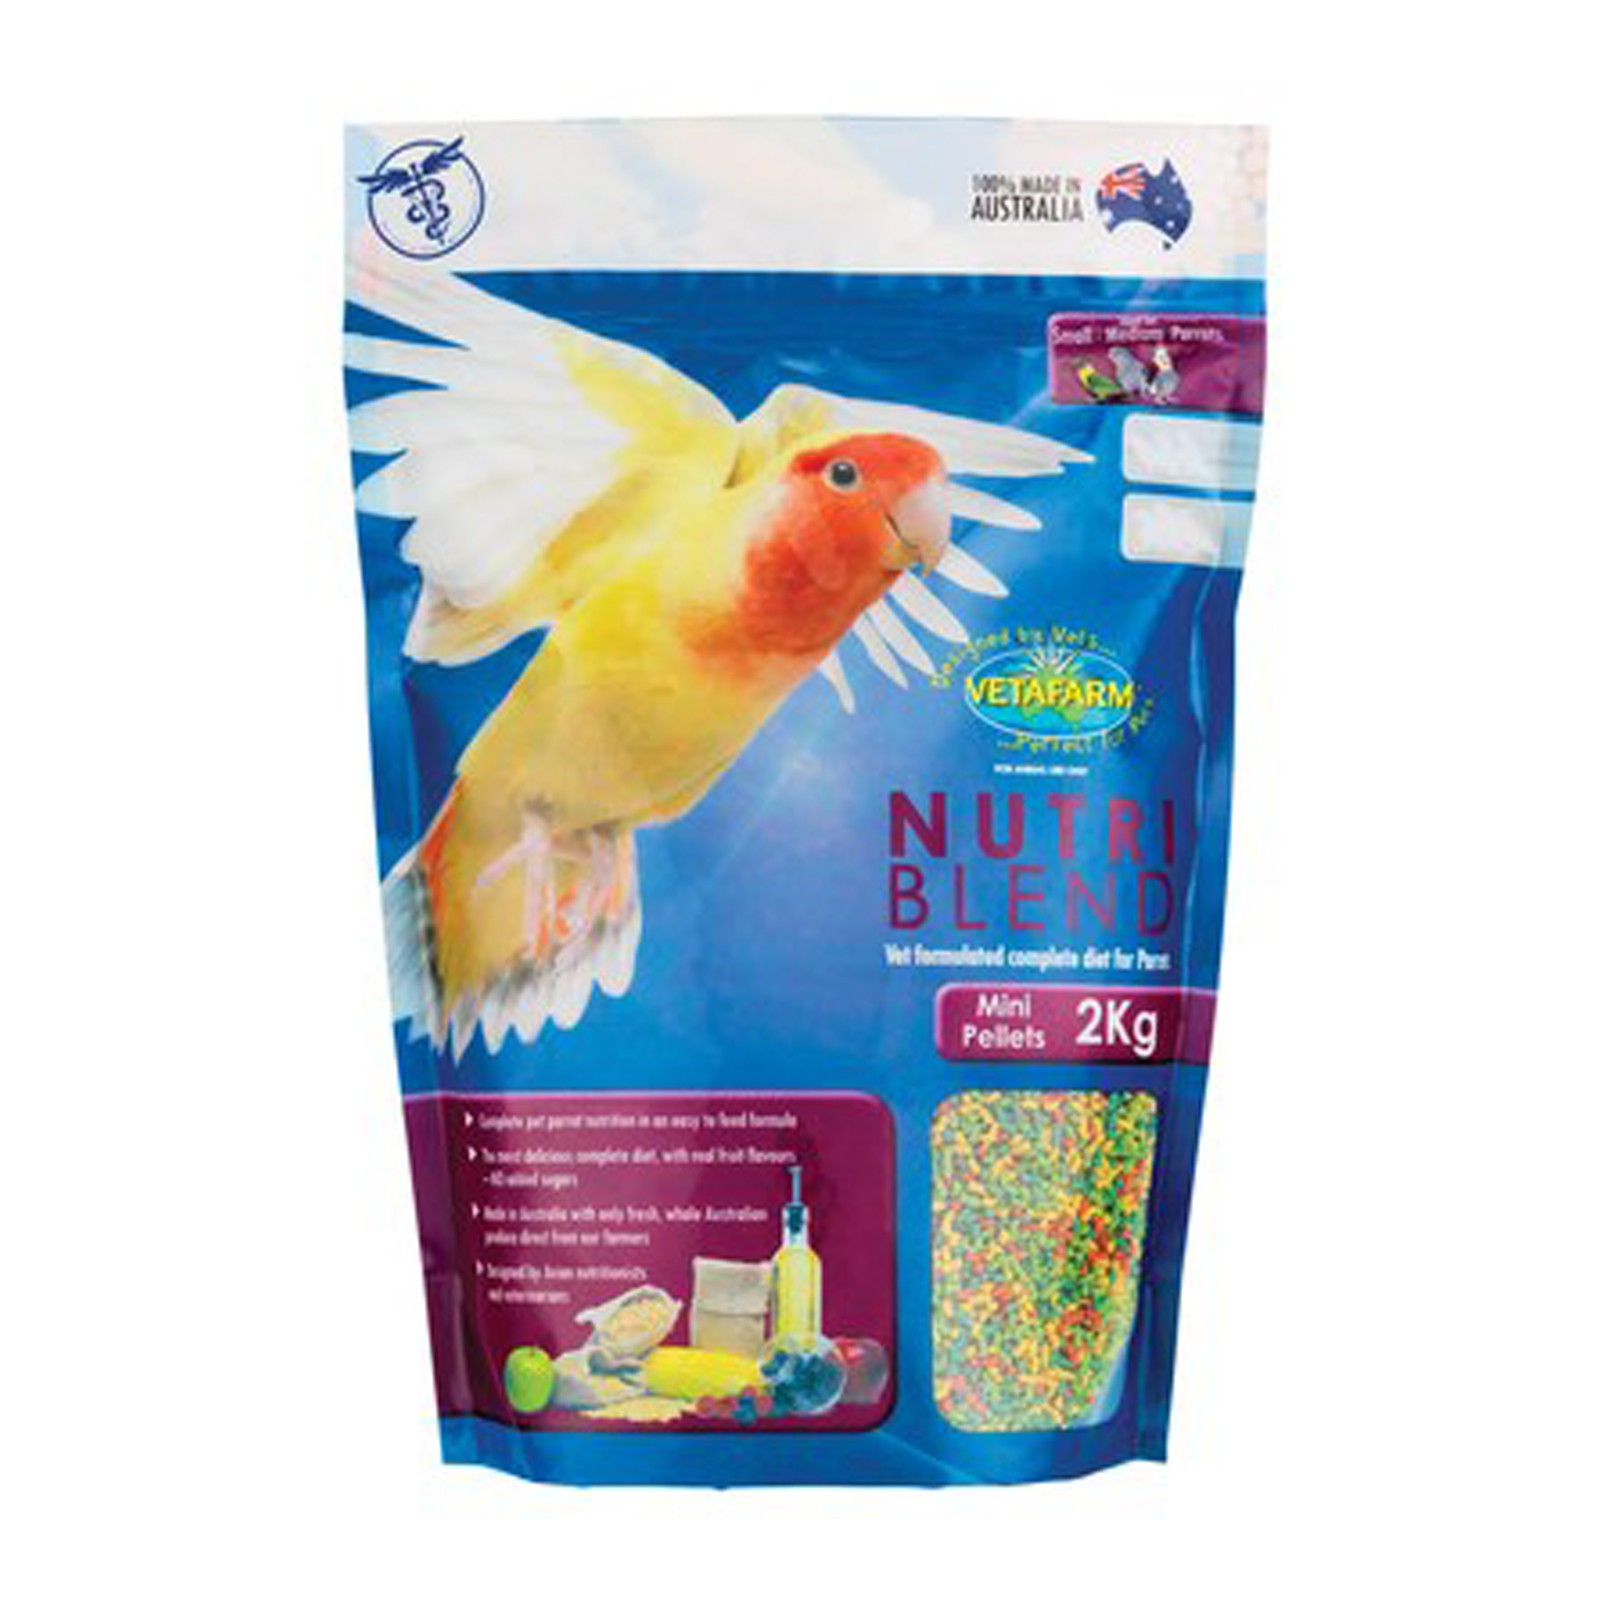 Vetafarm Nutriblend Mini Pellets 2kg - For Small to Medium Parrots Birds